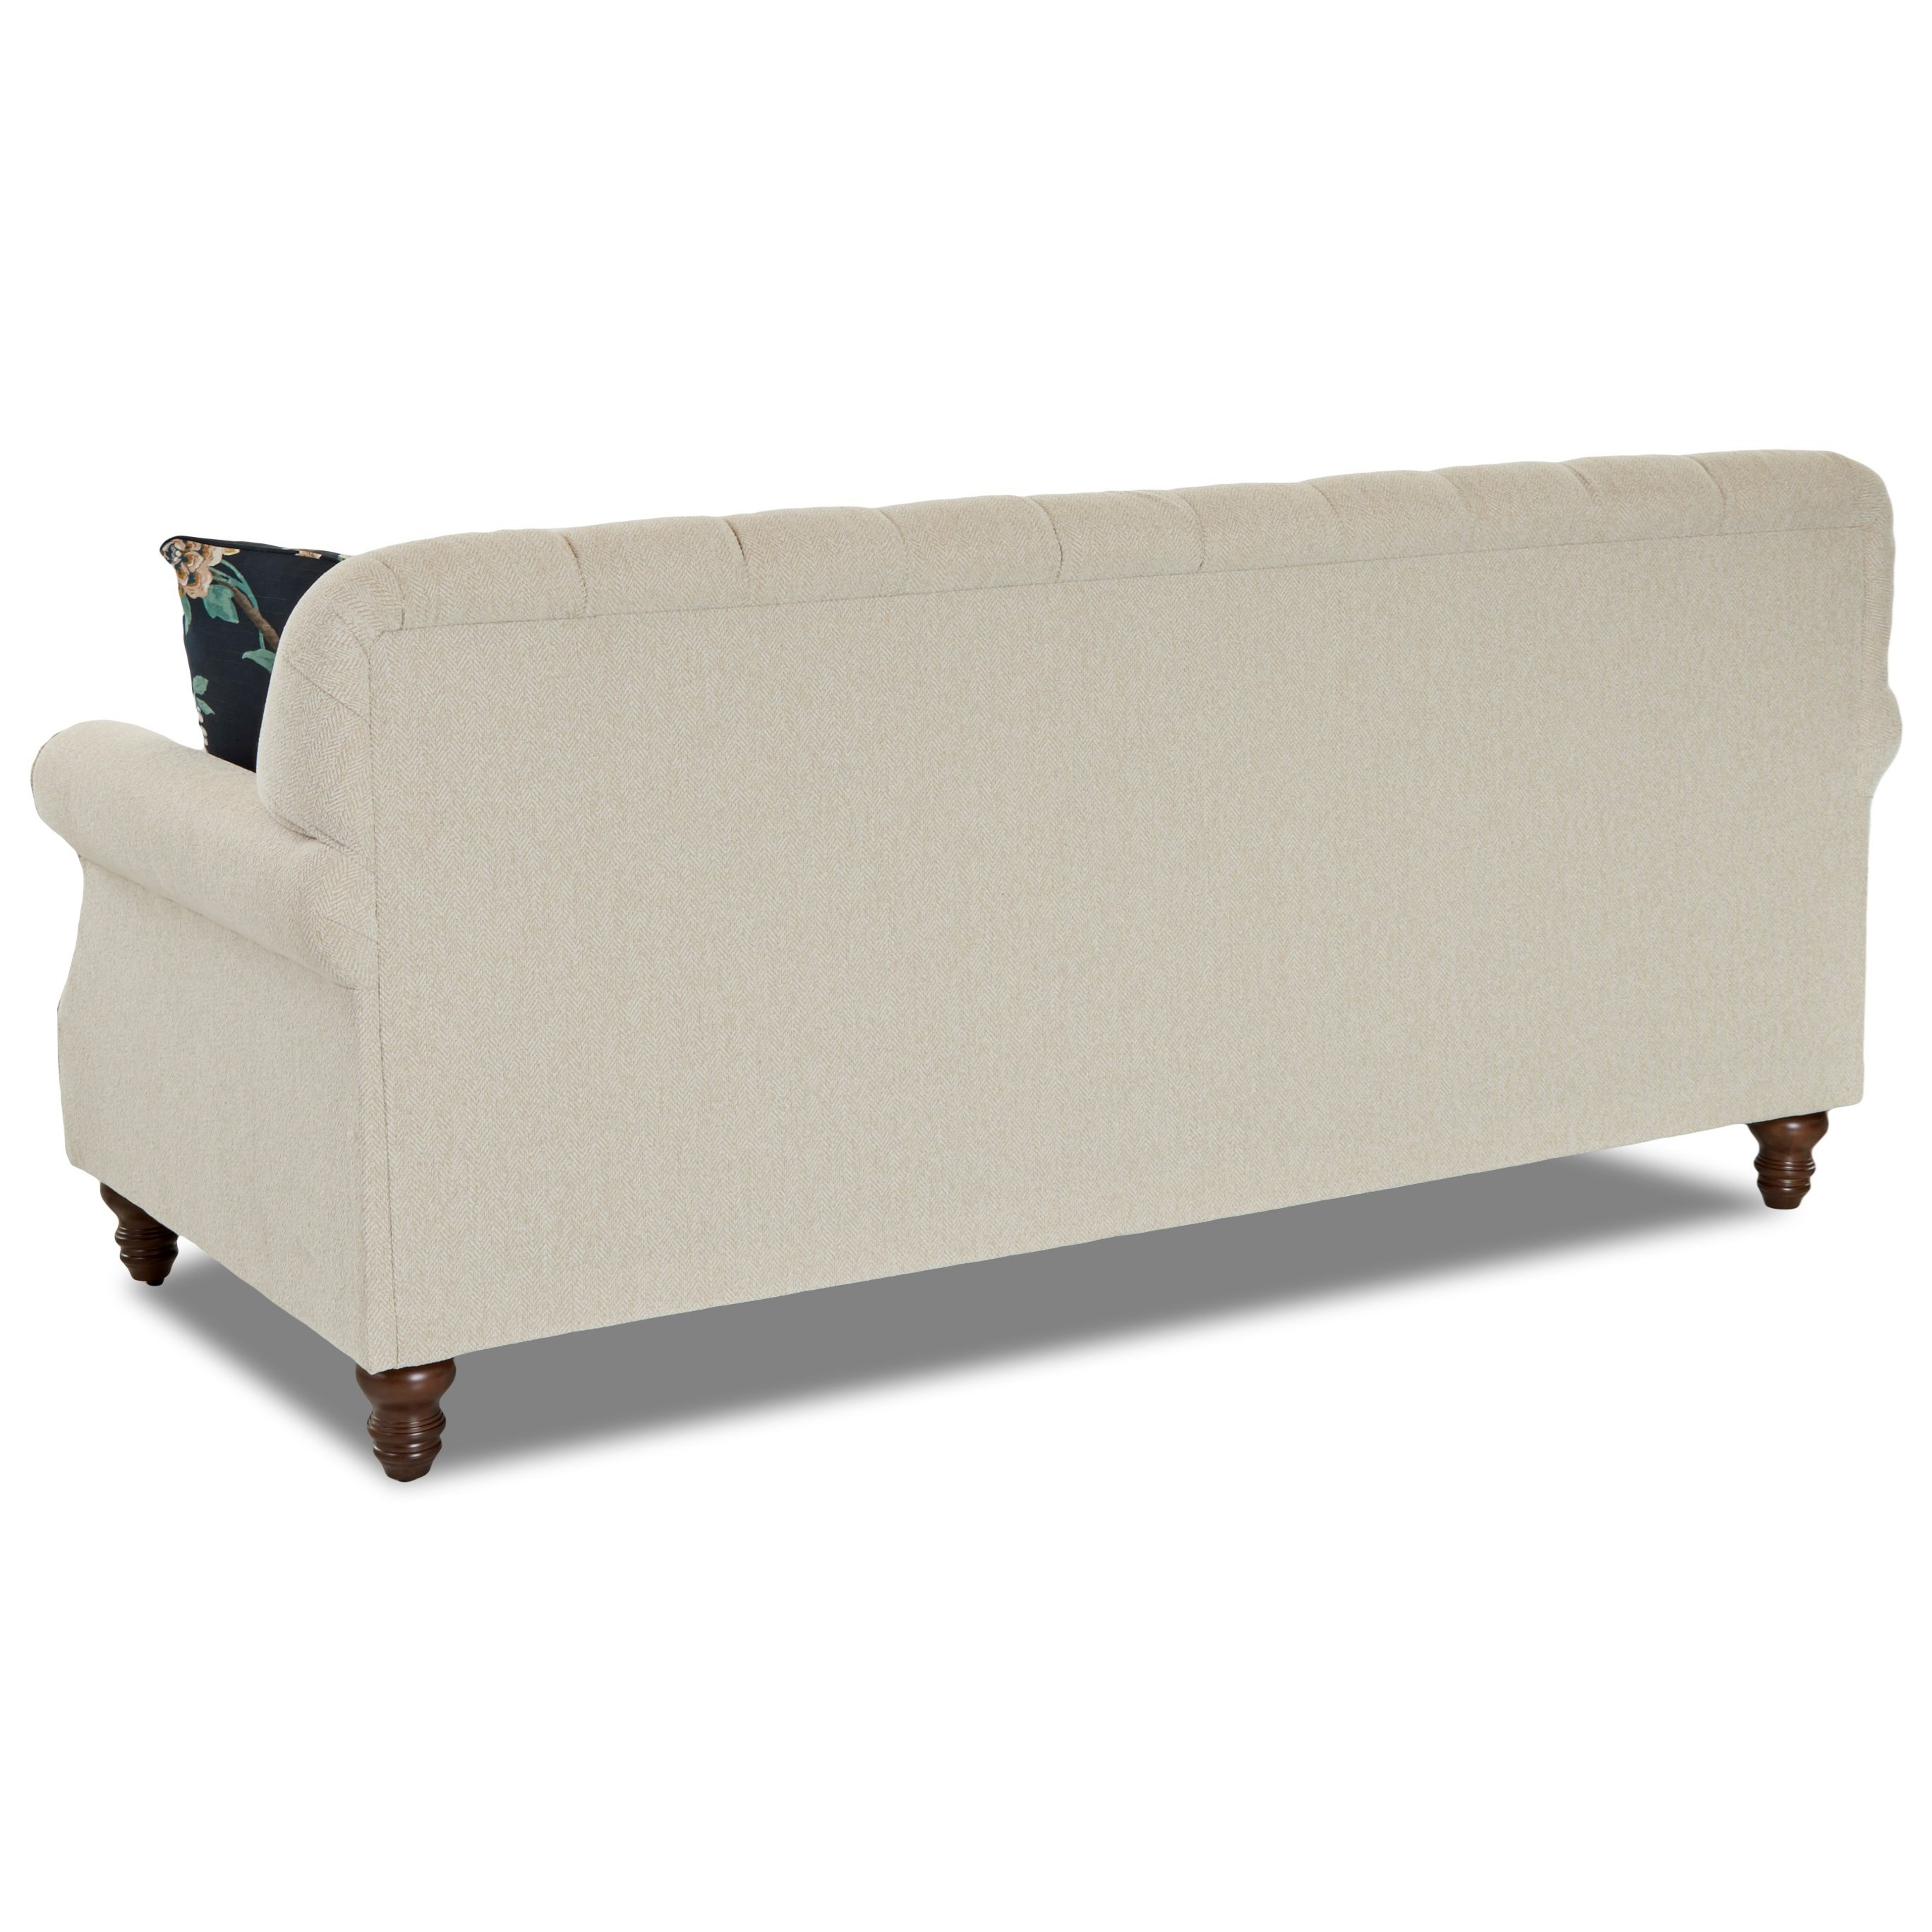 Ashley Furniture In Burbank: Klaussner Burbank K96800 S Traditional Tufted Apartment